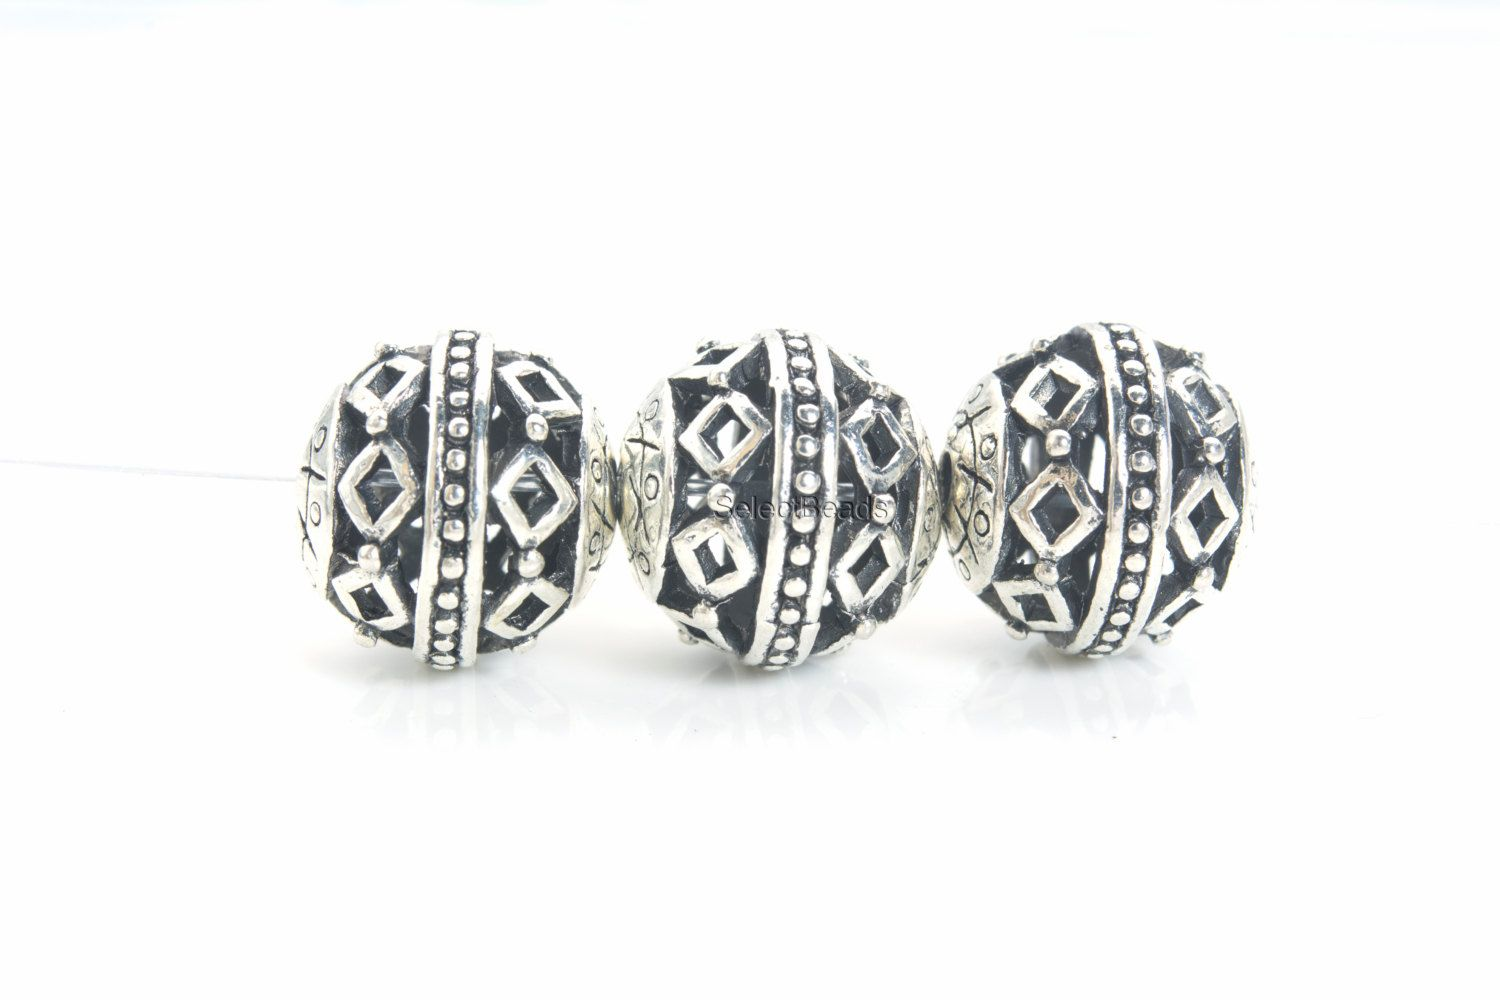 jewellery beads of wholesale for supplies findings jewelry and making allseason